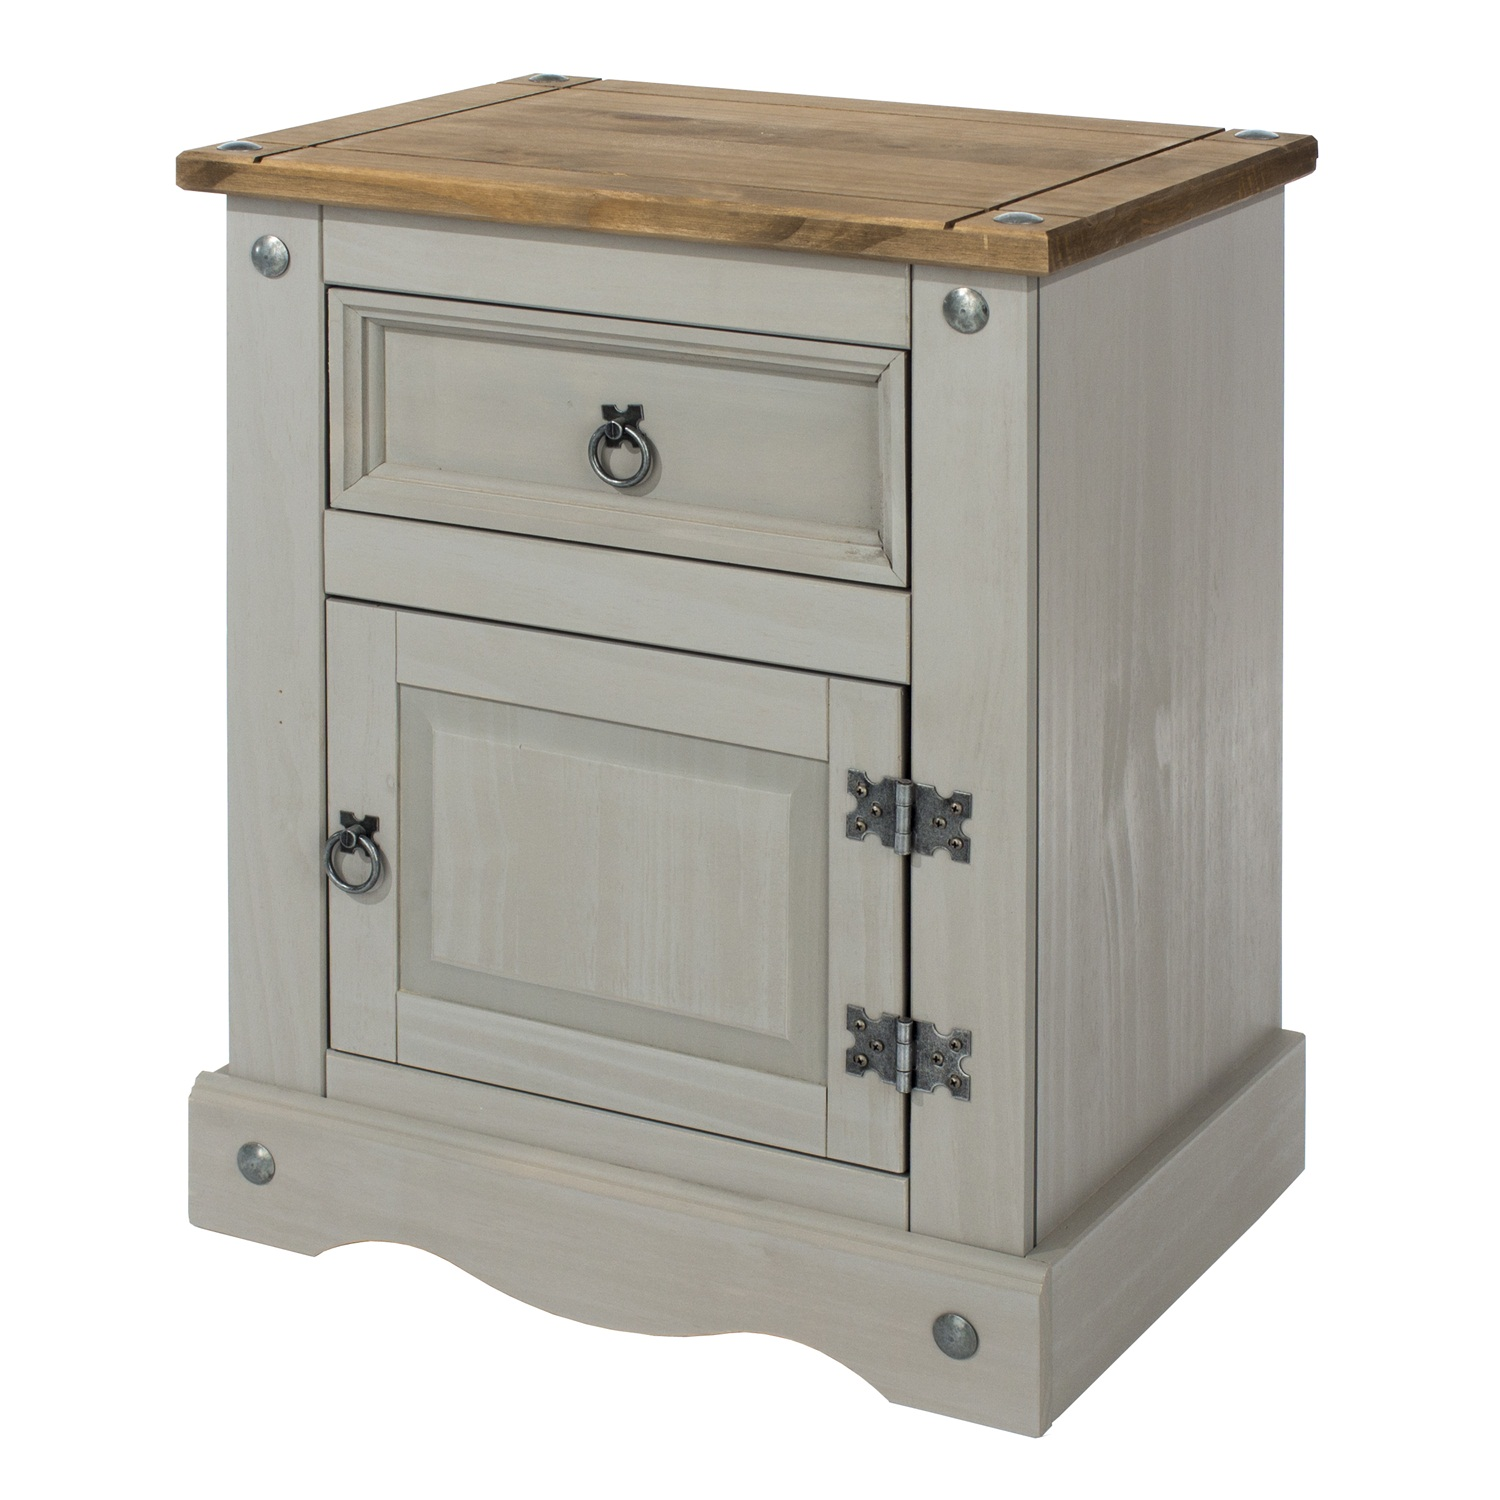 1 door, 1 drawer bedside cabinet